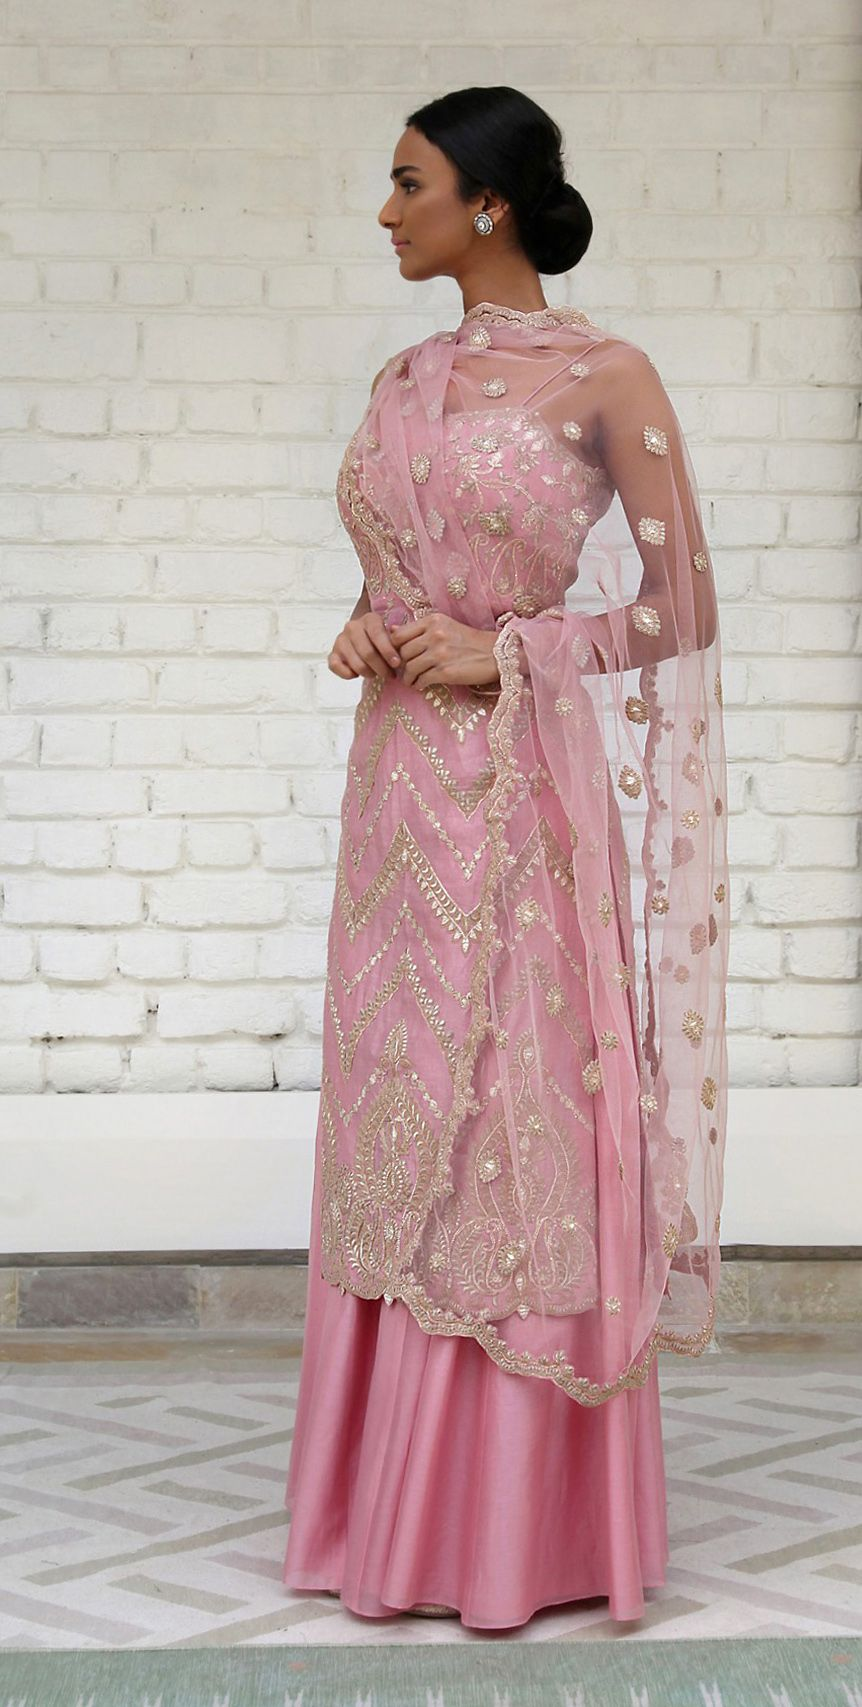 c129dbc19d Blush pink Chanderi silk straight shirt with all over gotta-tilla embroidery;  paired with a soft tulle dupatta and silk sharara.